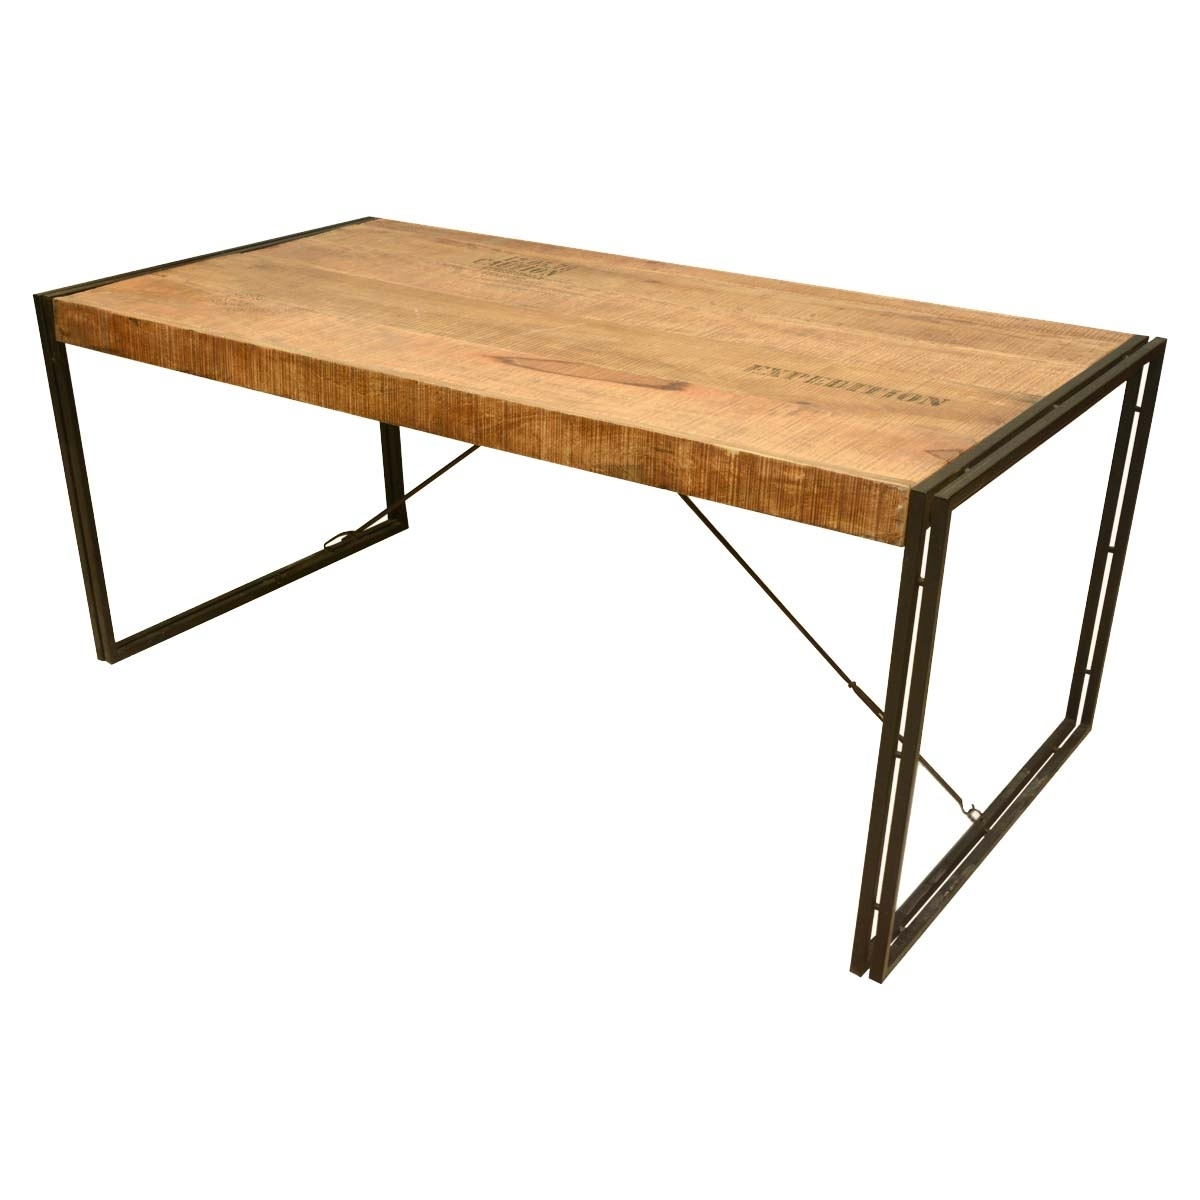 Large Rustic Industrial Style Mango Wood And Iron Dining Table Throughout Current Mango Wood/iron Dining Tables (Image 10 of 20)